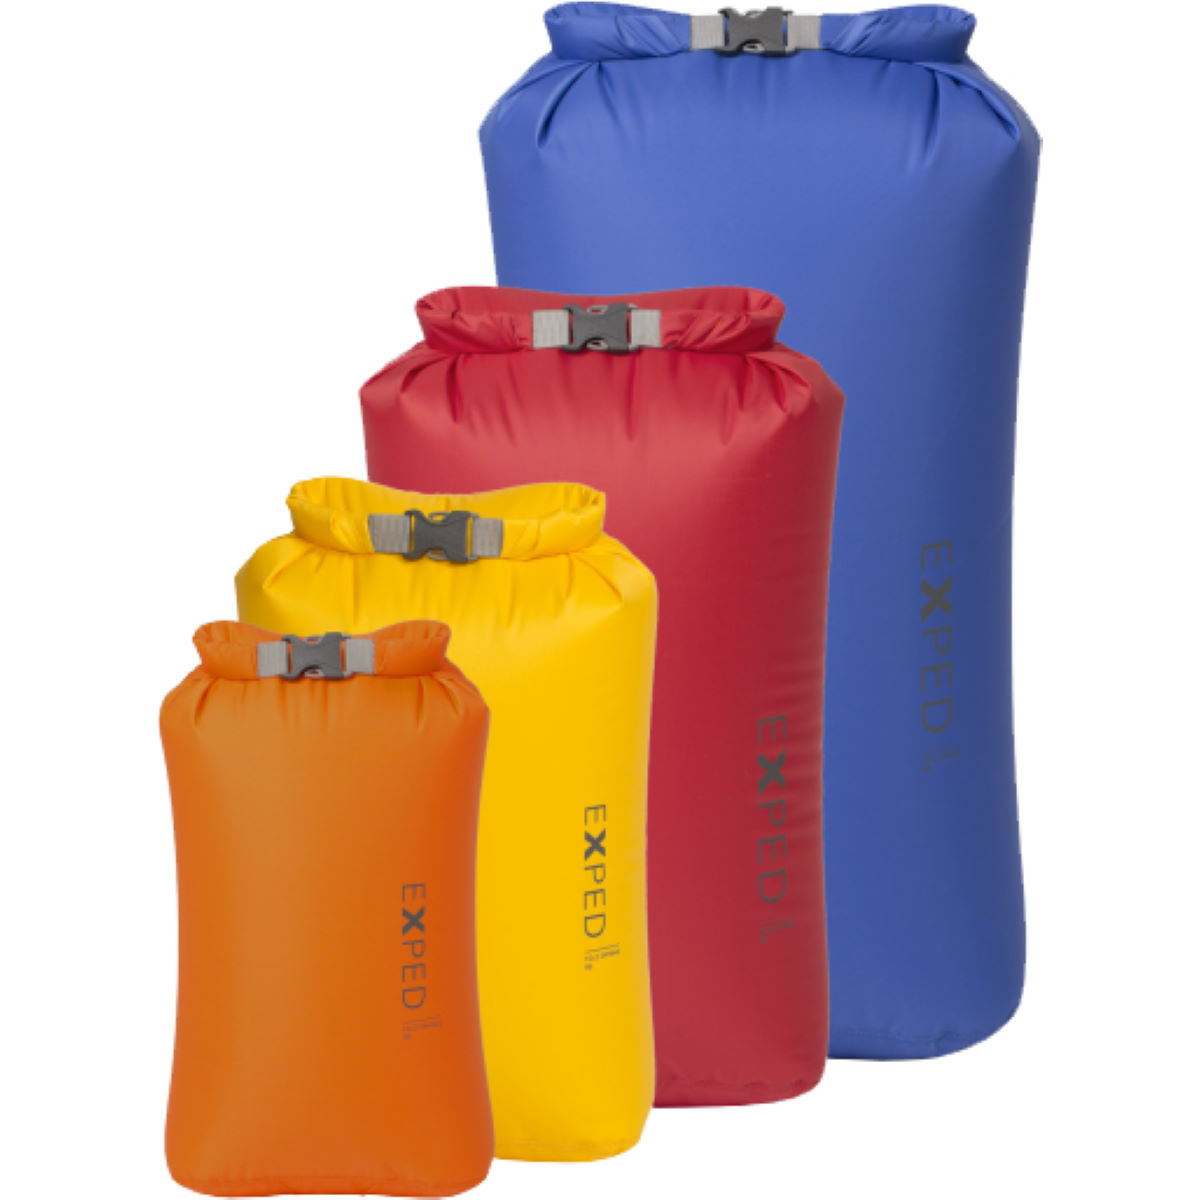 Exped Fold-Drybags BS 4 pack - Bolsas estancas